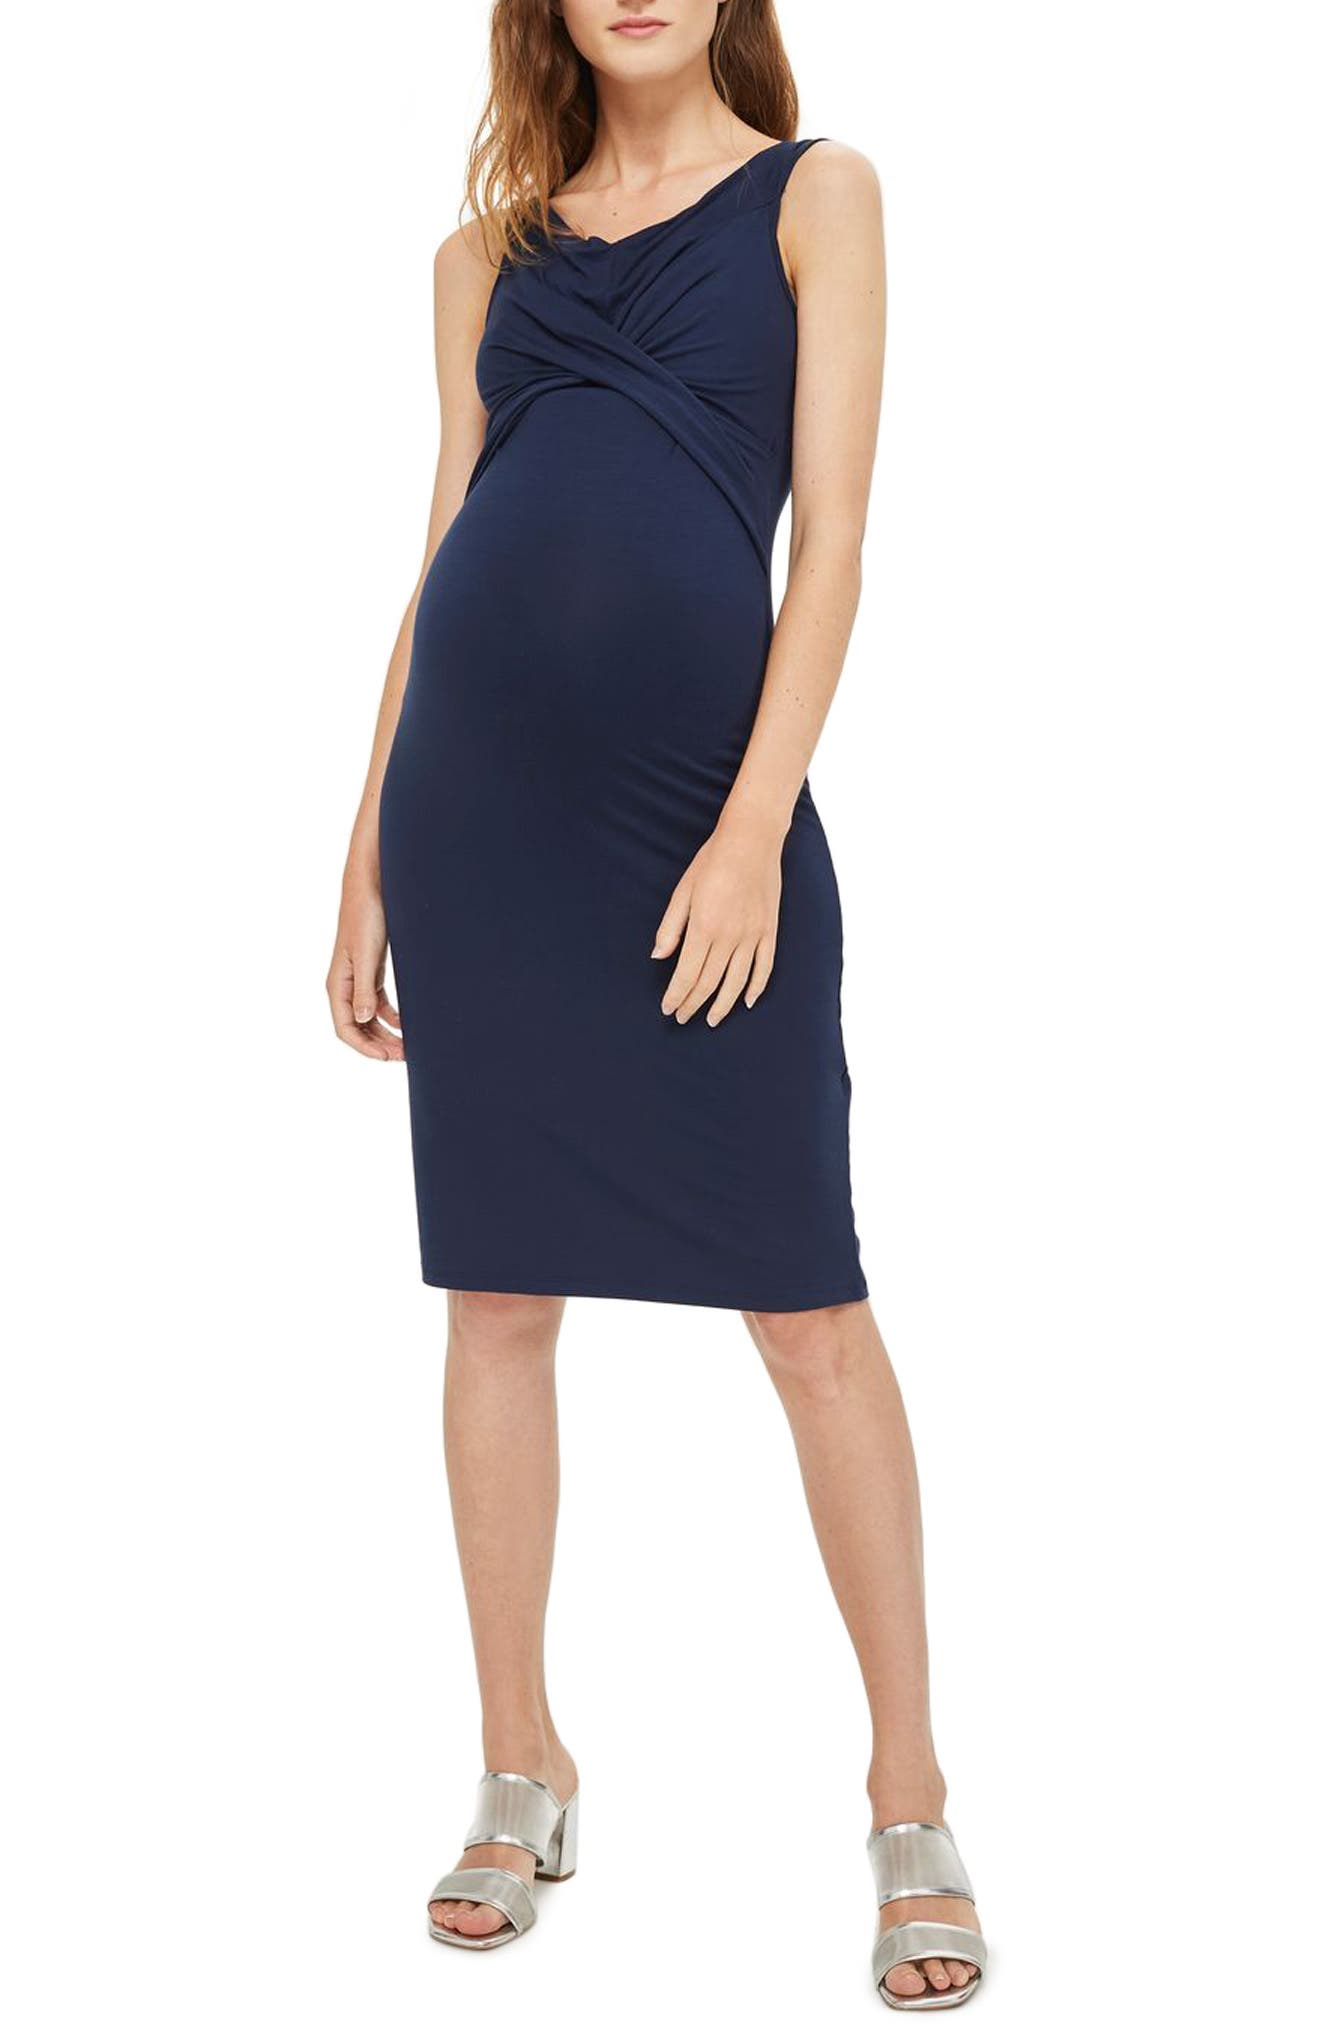 Topshop Convertible Off the Shoulder Maternity/Nursing Dress